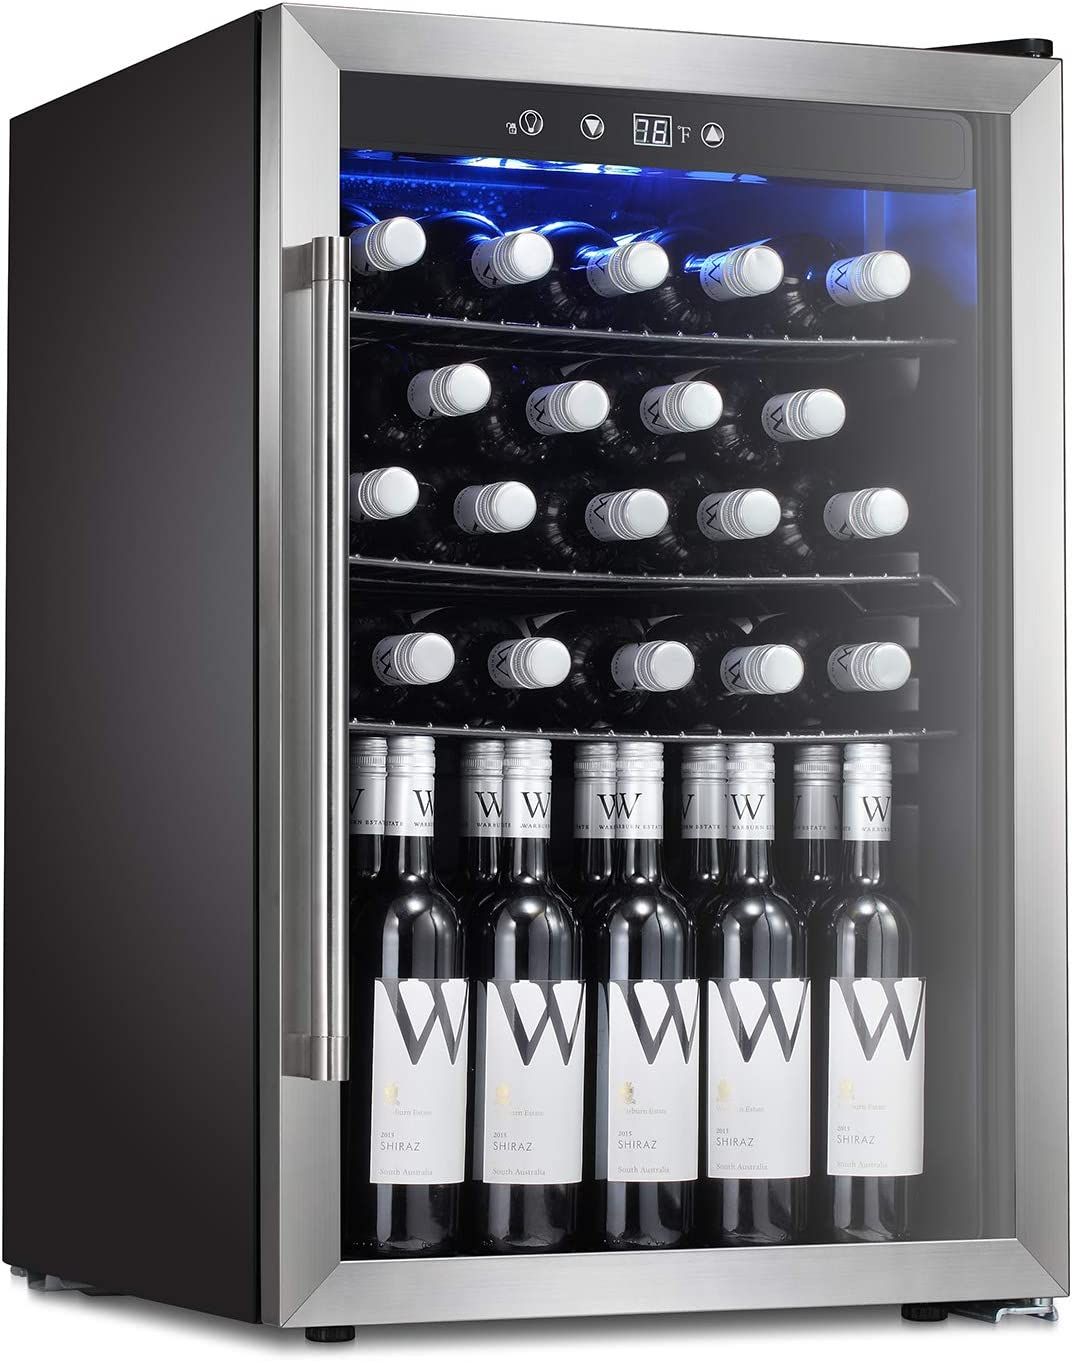 NutriChef 16 Bottle Thermoelectric Red And White Wine Cooler Chiller, Counter Top Wine Cellar with Digital Control, Freestanding Refrigerator, Smoked Glass Door, Quiet Operation Fridge